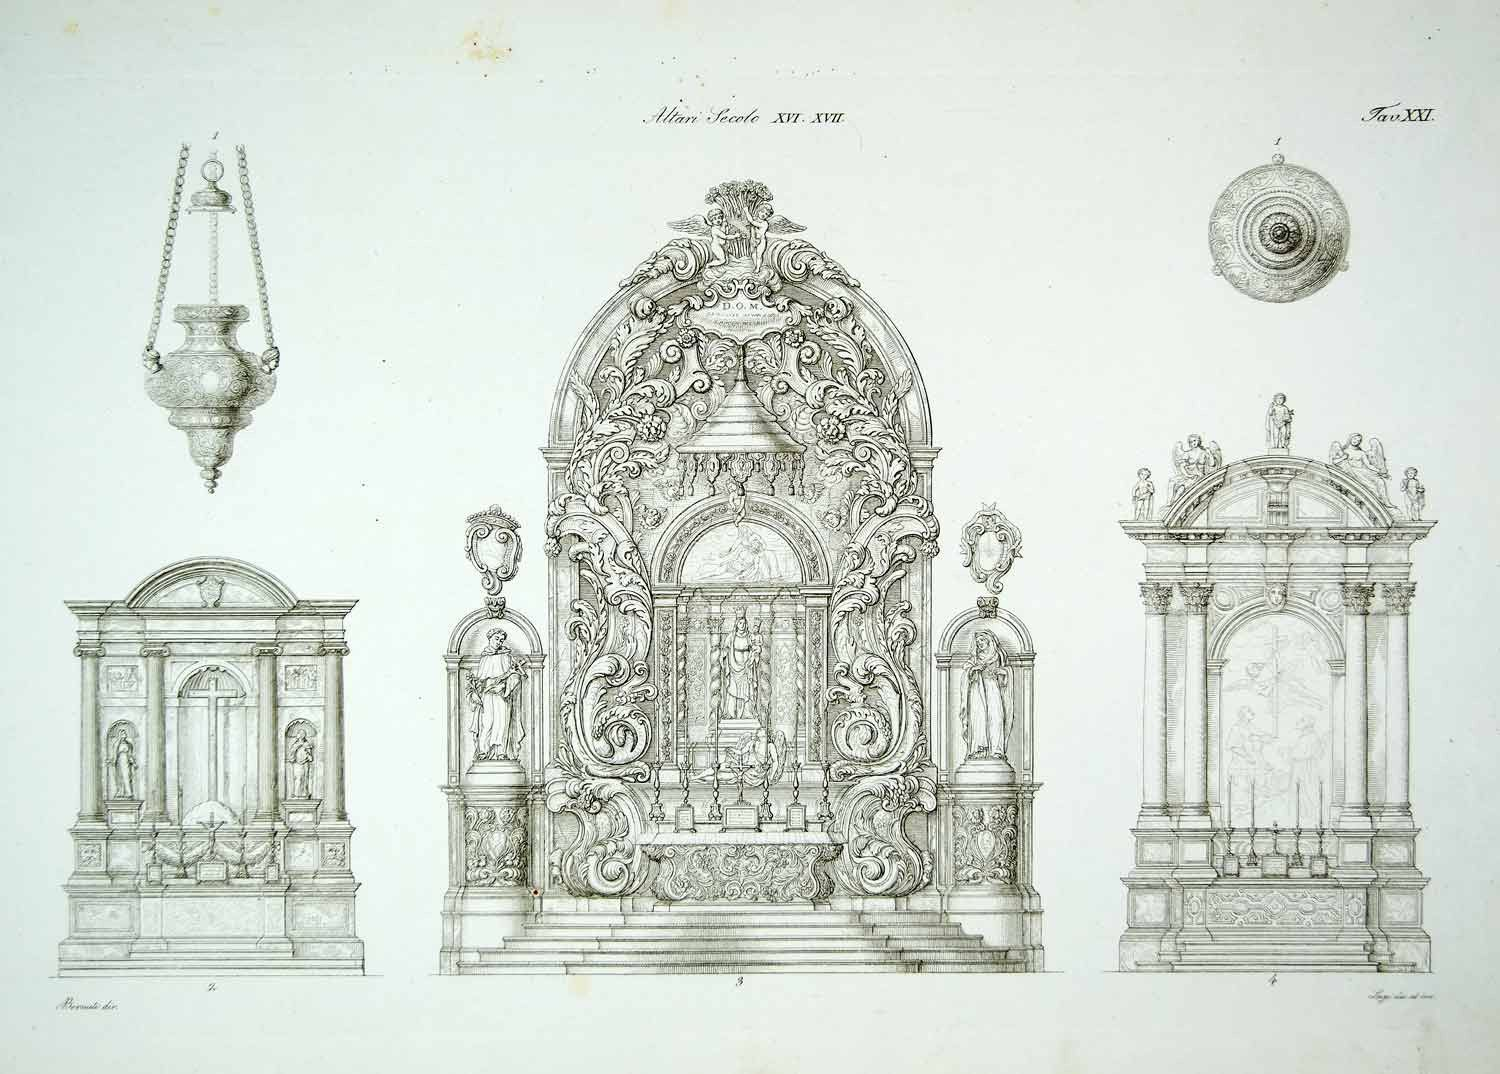 1843 copper engraving antonio bernati art baroque architecture